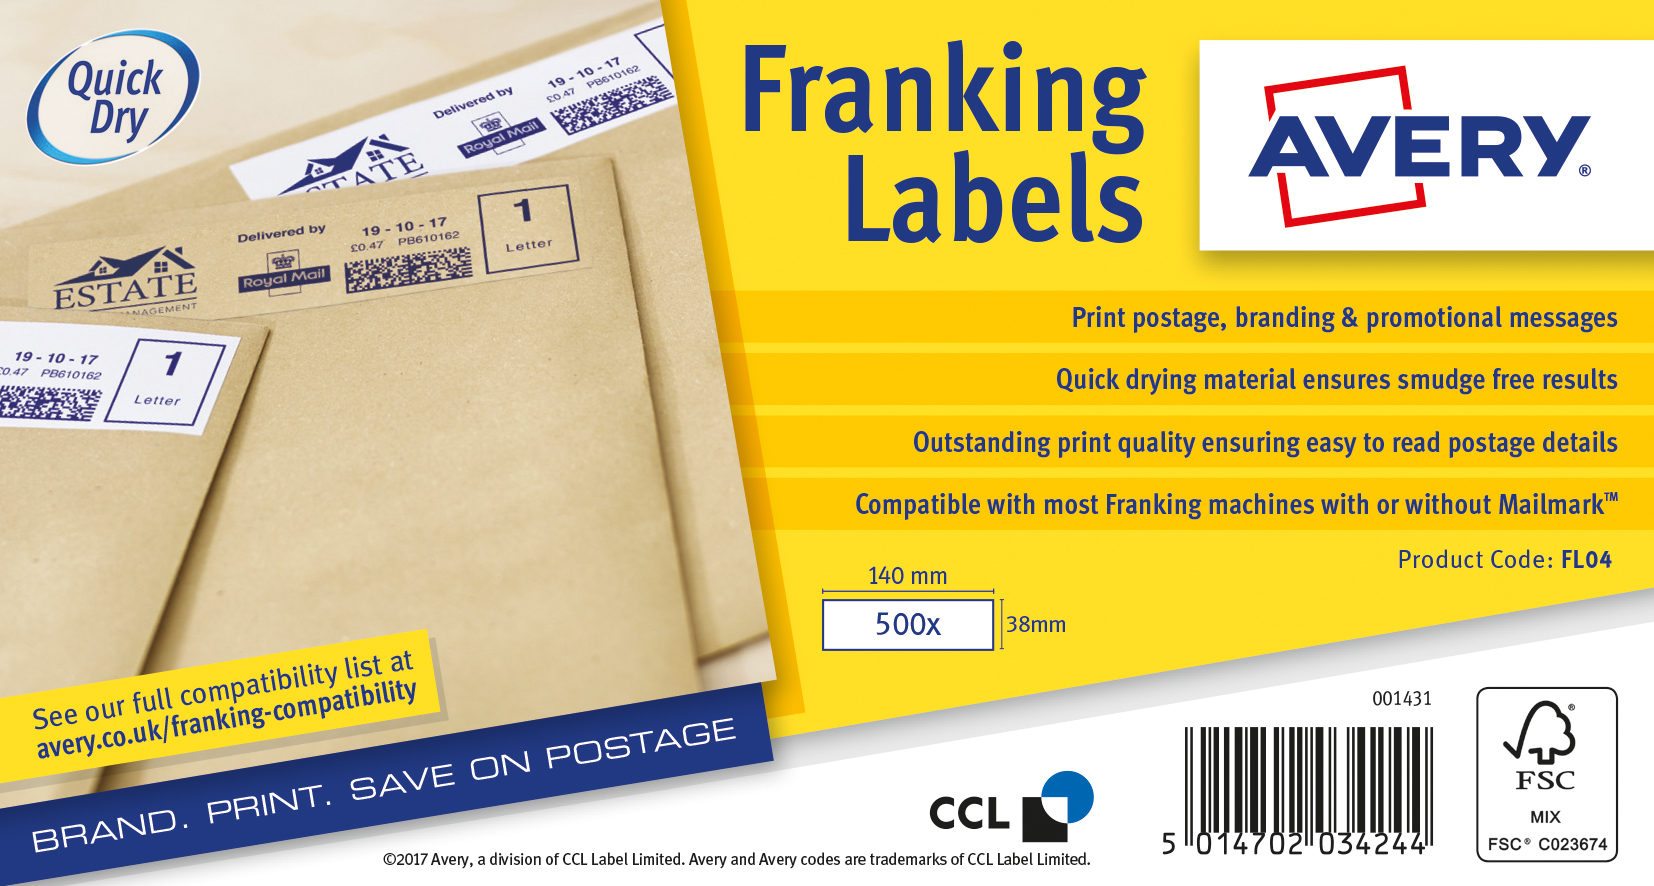 Franking Labels Avery Franking Labels Auto Hopper 140x38mm FL04 (1000Labels)